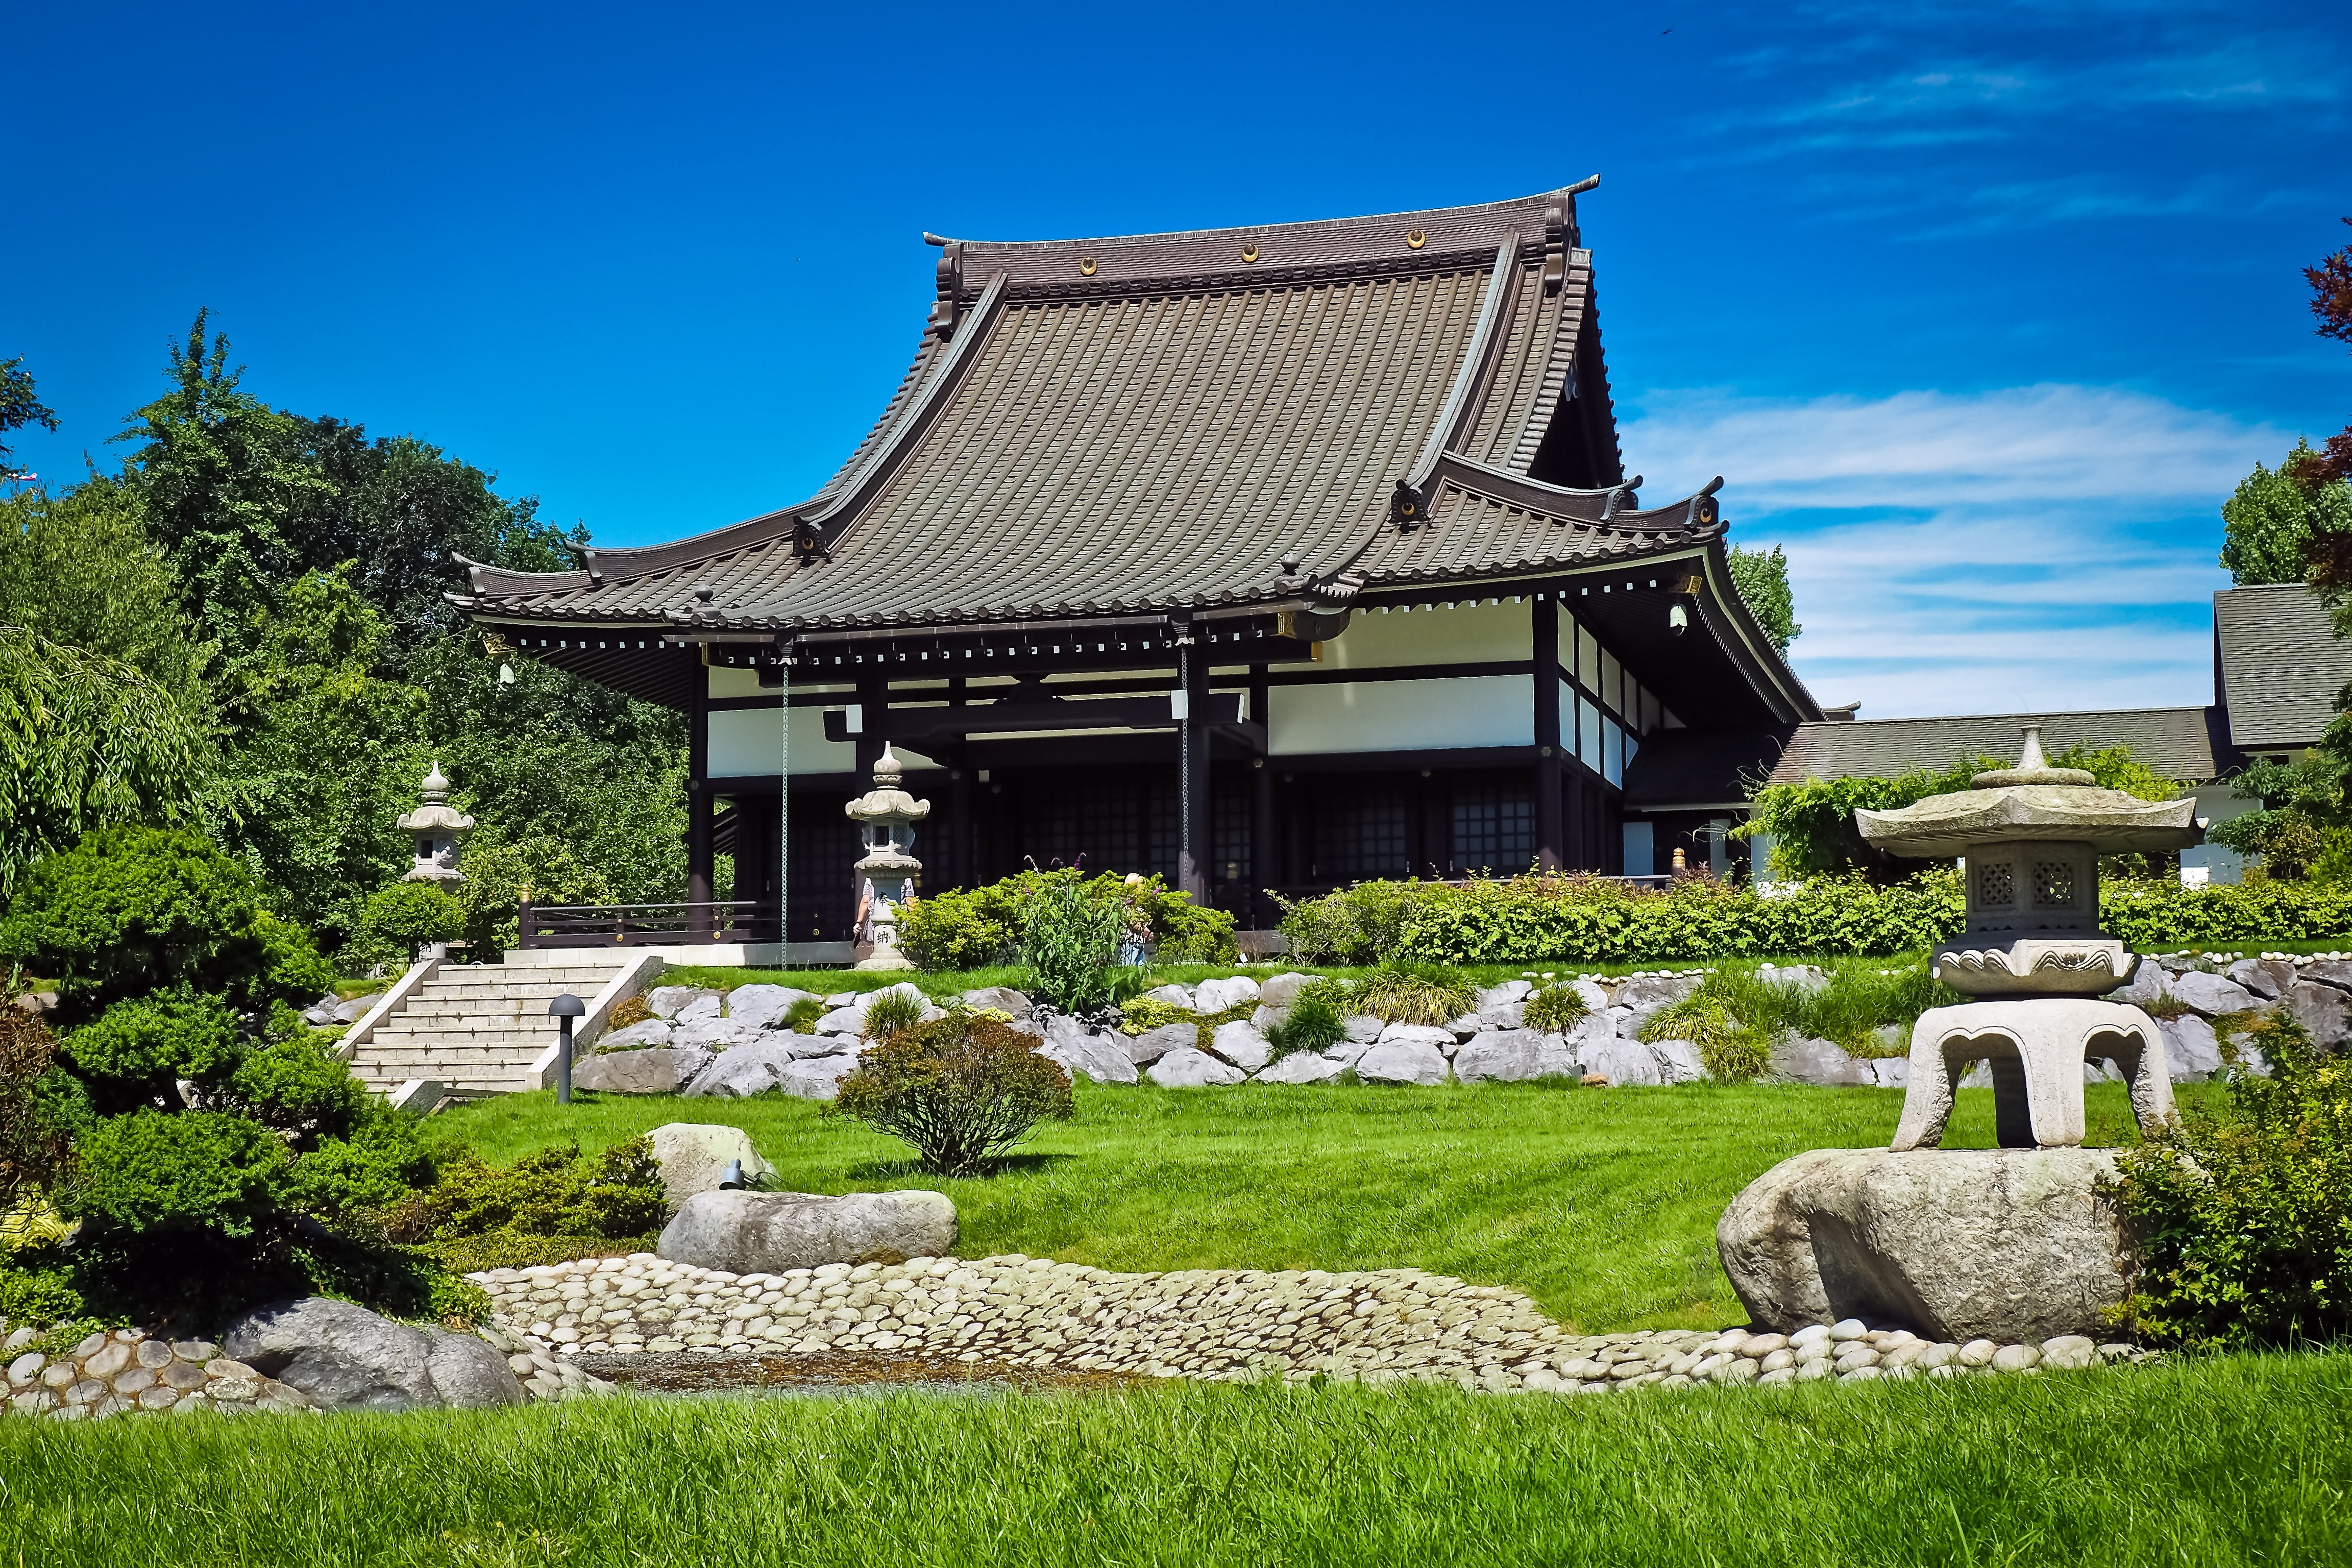 White and Black Temple Surrounded by Green Grass Field during Daytime, Shinto, Park, Outdoors, Manicured lawn, HQ Photo